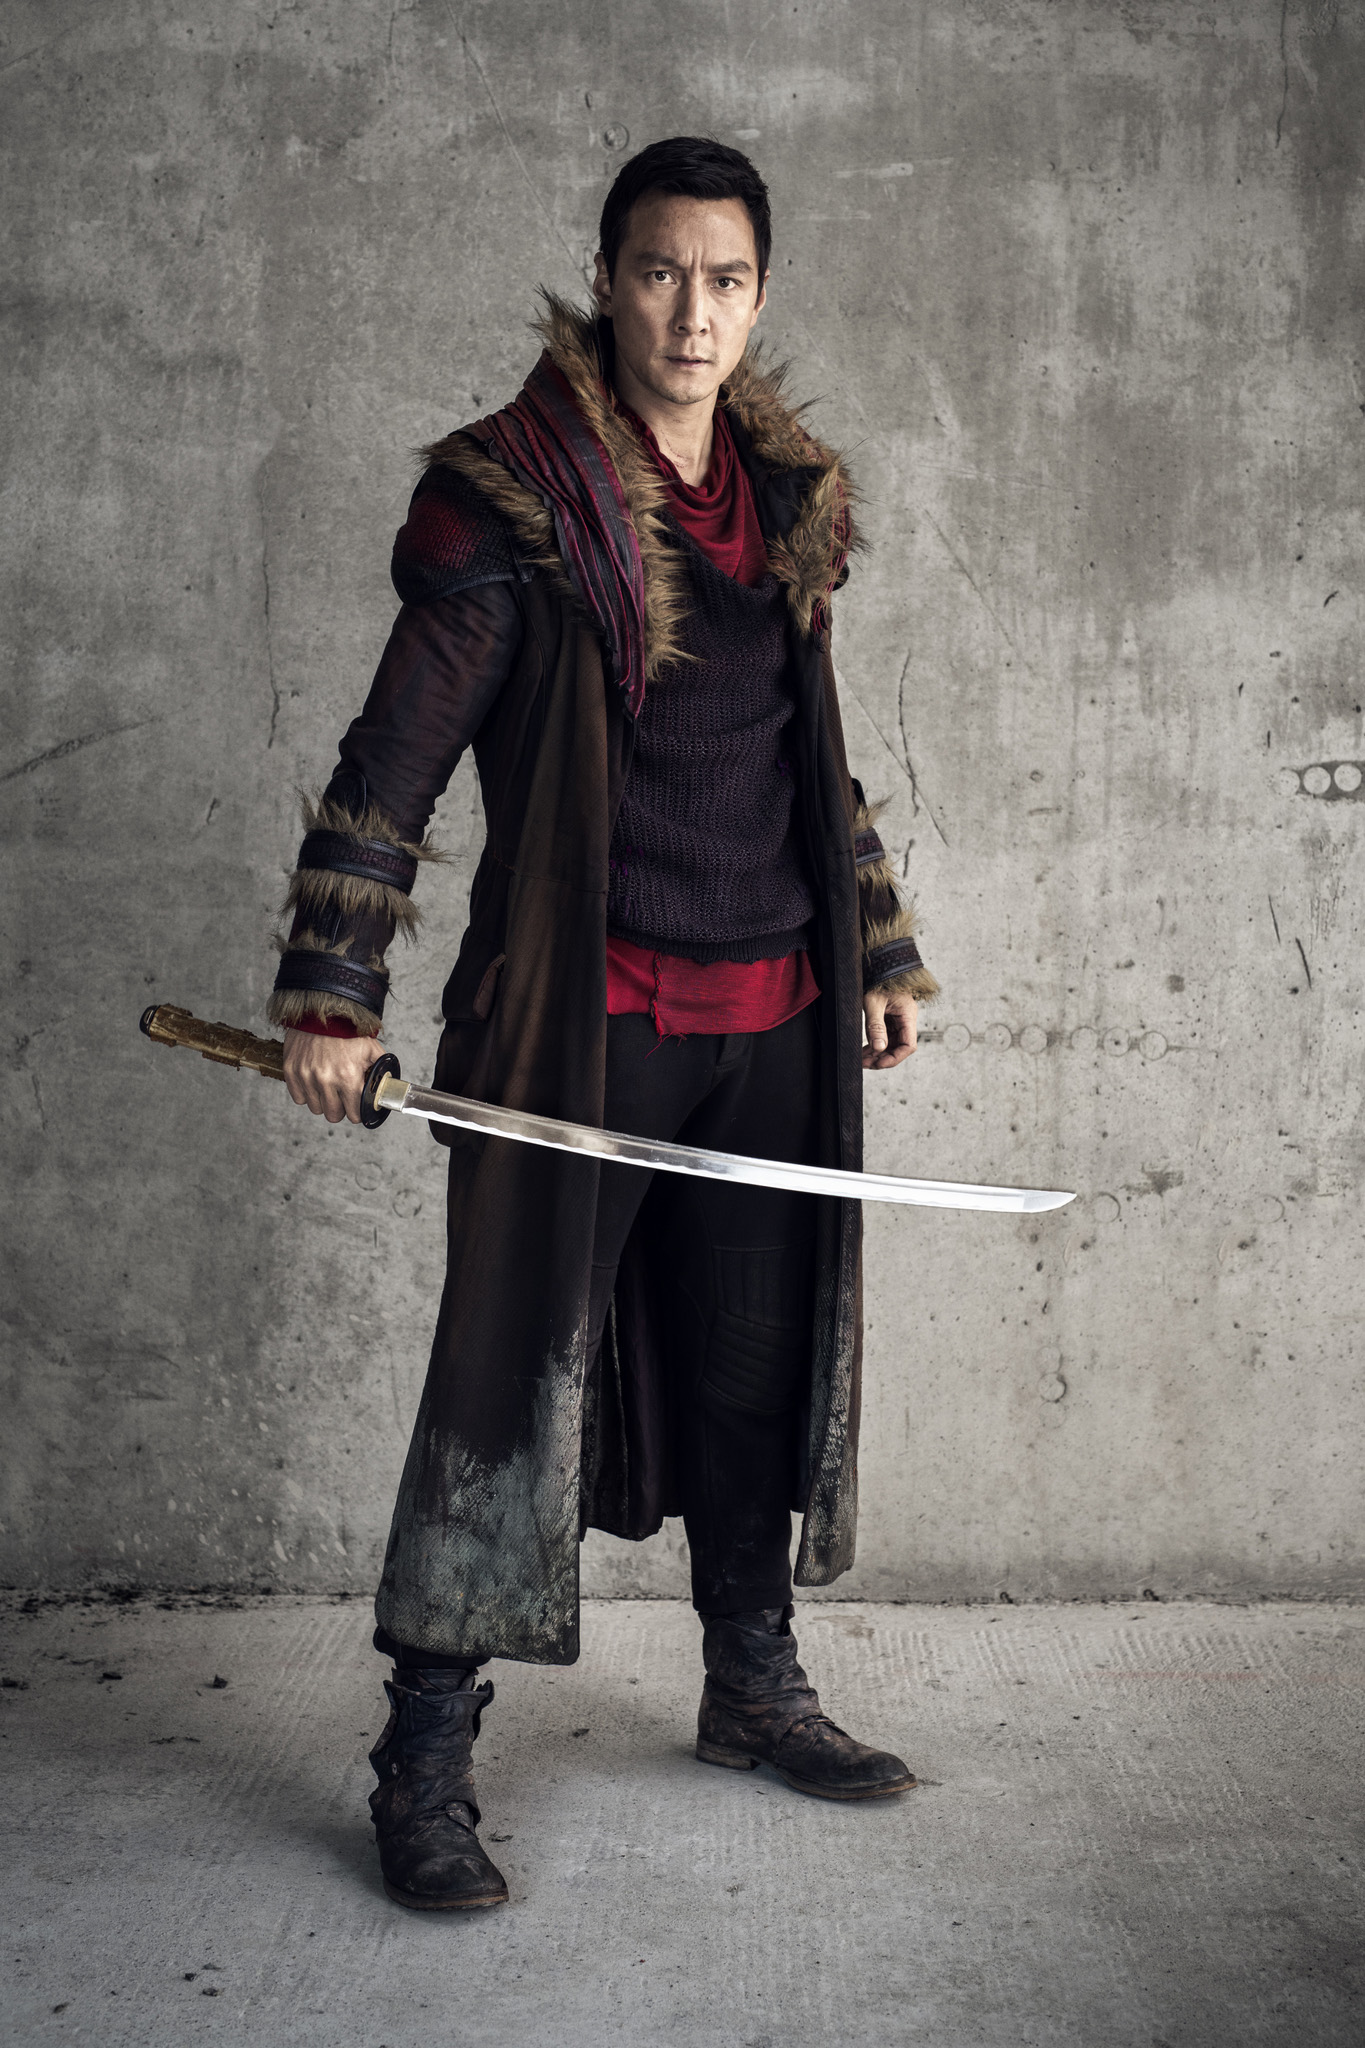 Into the Badlands: Fotos revelam os personagens da  3ª temporada